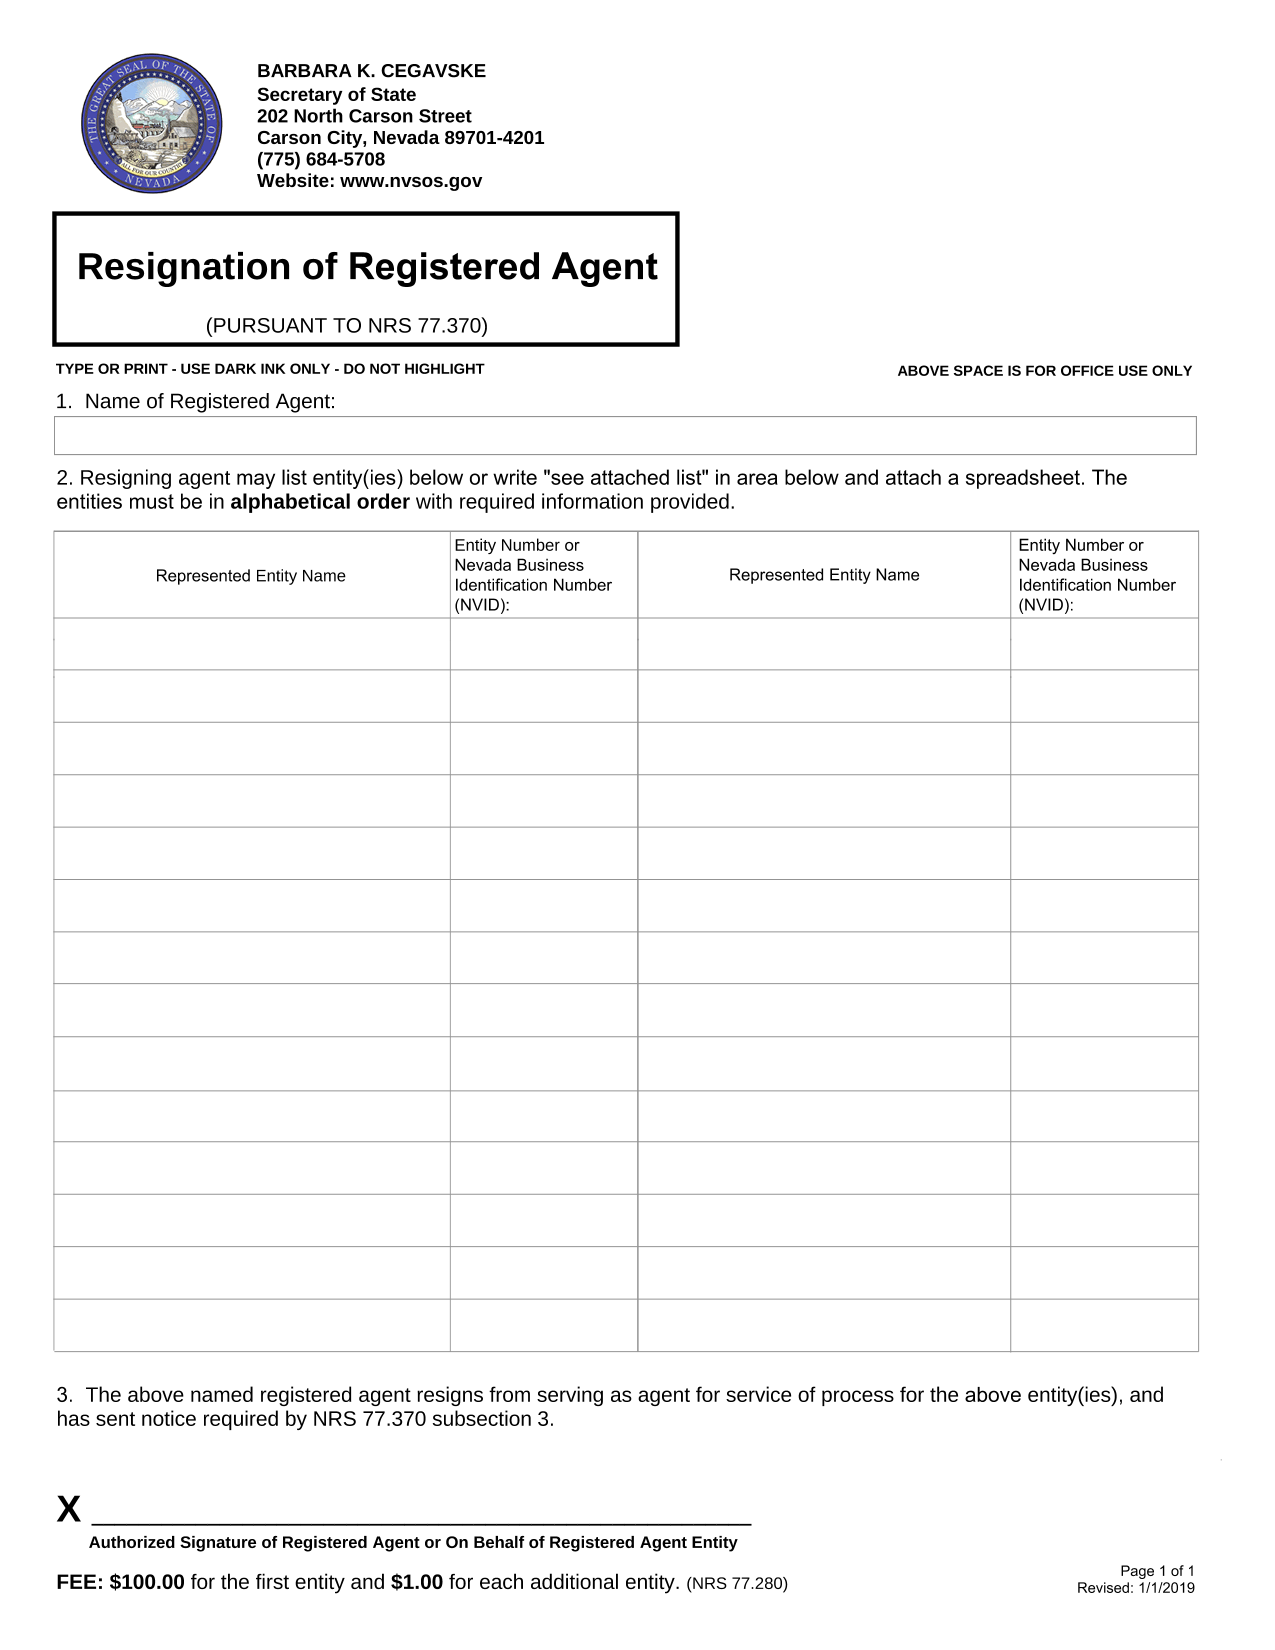 How To Resign As Registered Agent For Nevada Llc Or Corporation